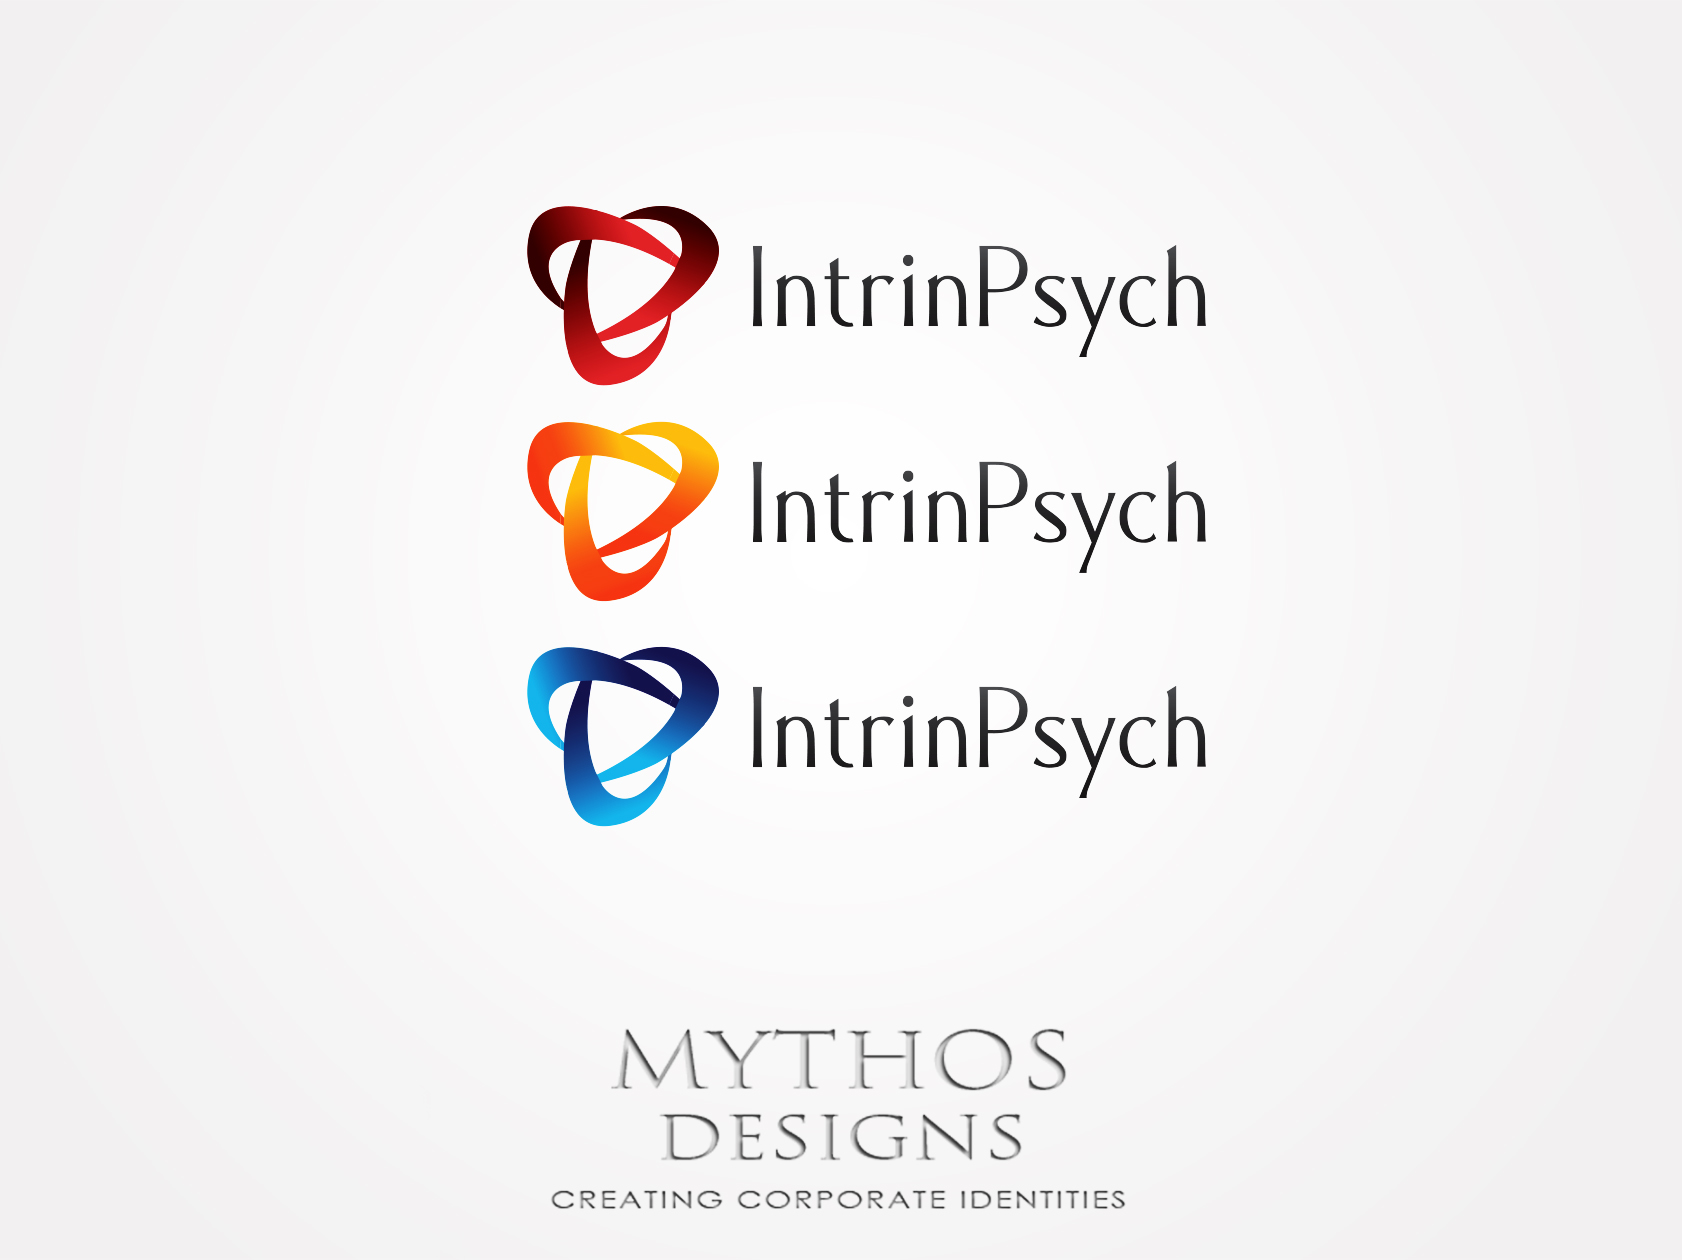 Logo Design by Mythos Designs - Entry No. 30 in the Logo Design Contest New Logo Design for IntrinPsych.